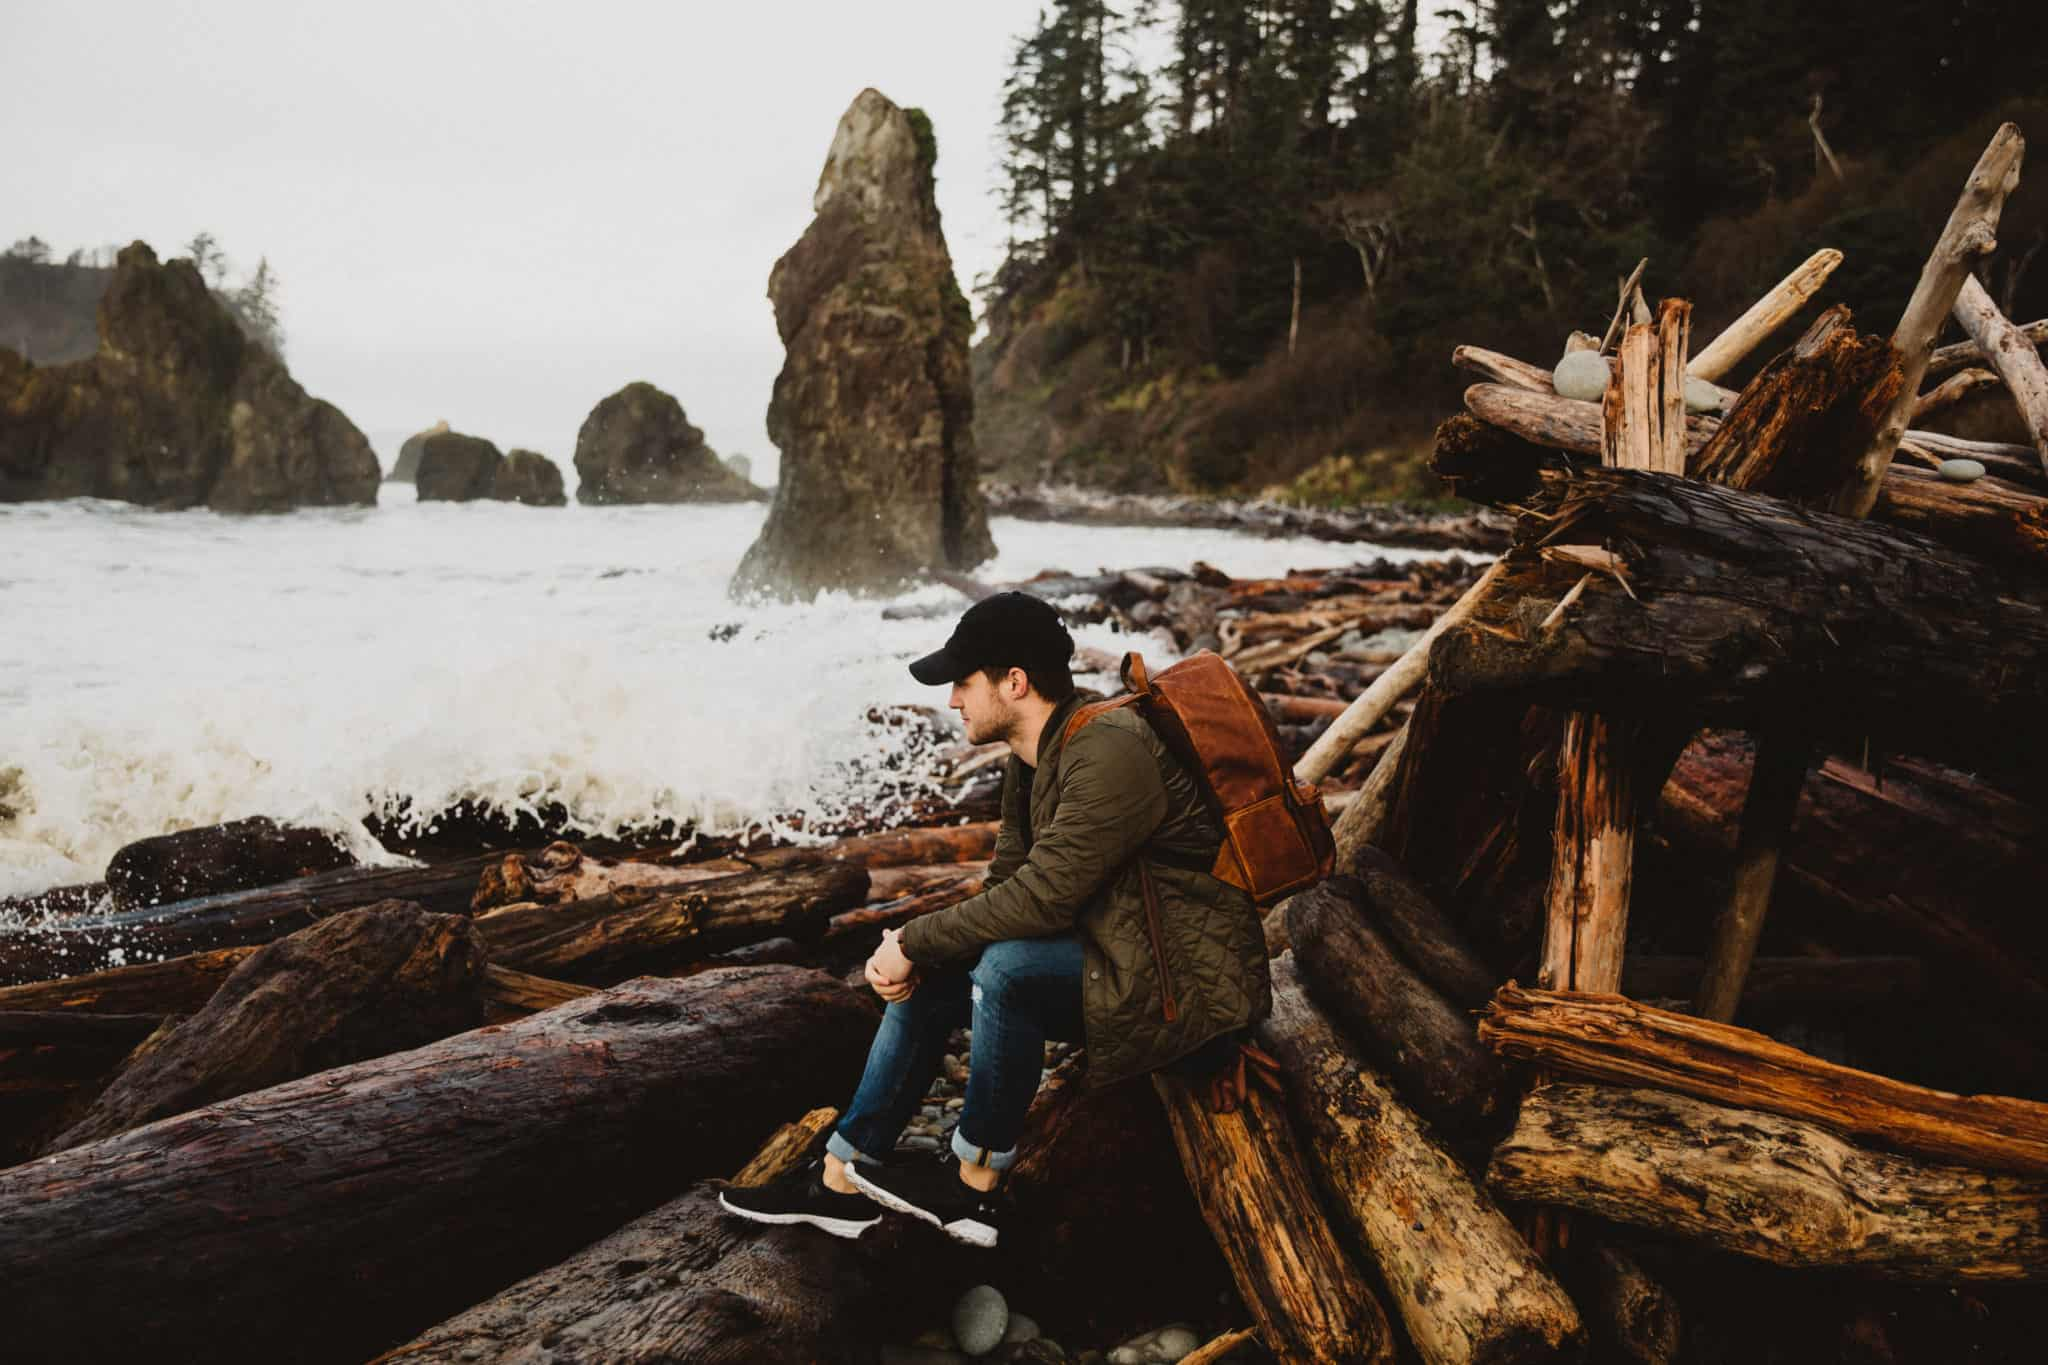 Matt at Ruby Beach on the Washington Coast